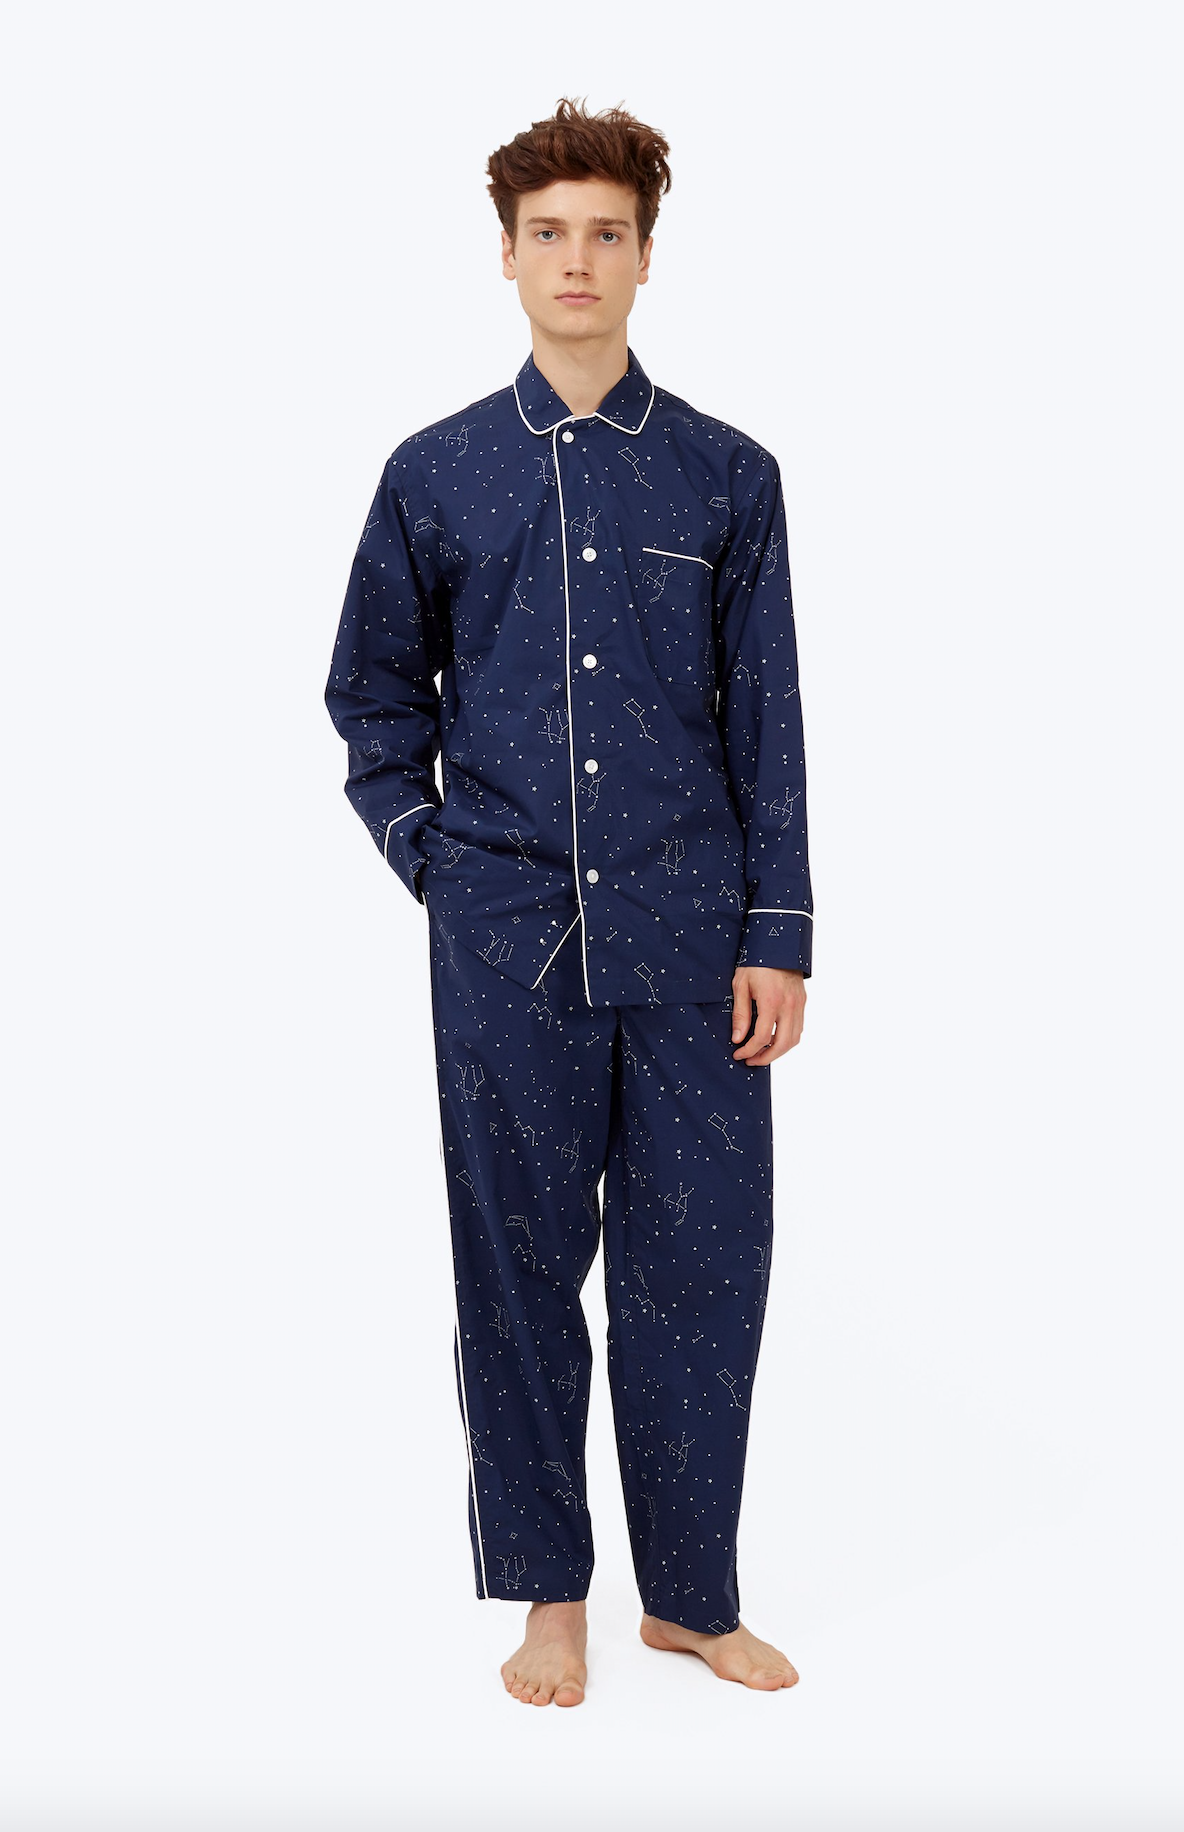 Constellation Pajama Set